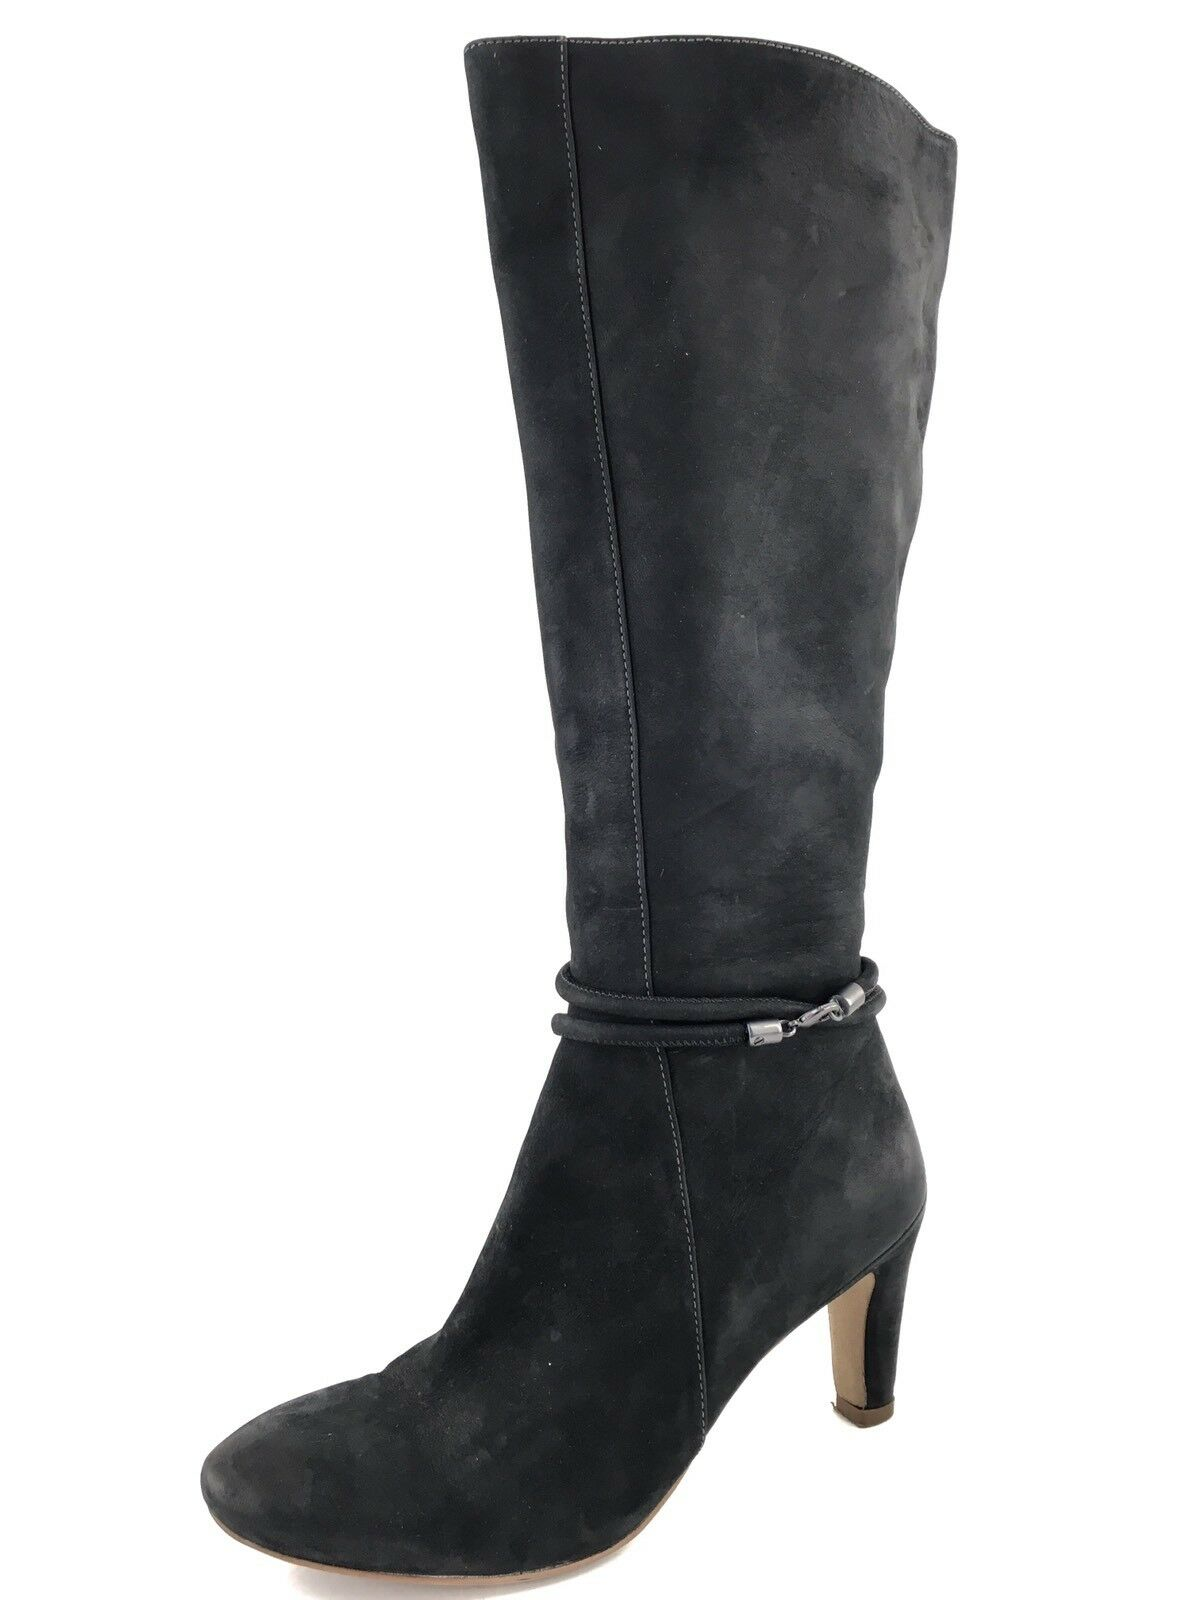 ECCO Nephi Black Nubuck Leather Knee High Boots Womens Size 38 M *